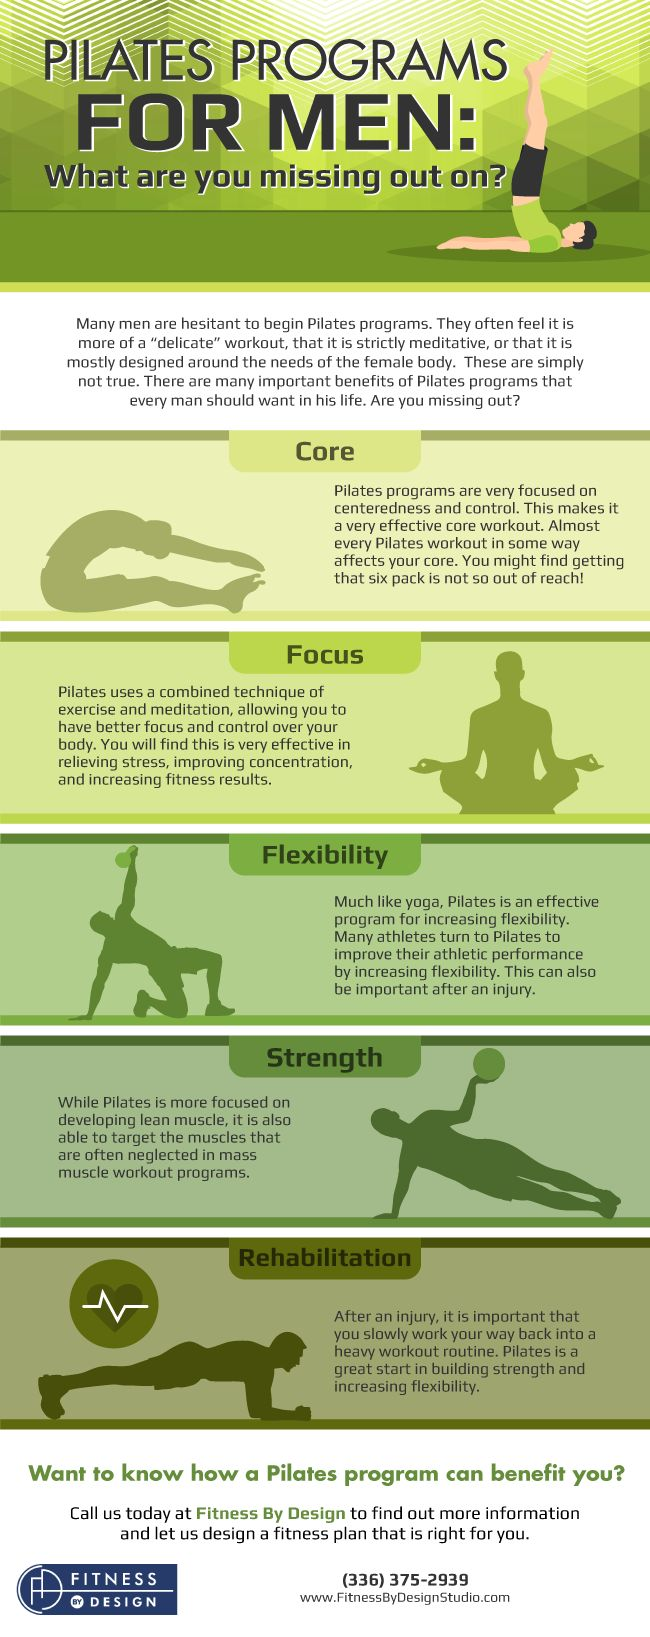 Pilates Programs for Men: What Are You Missing Out On?